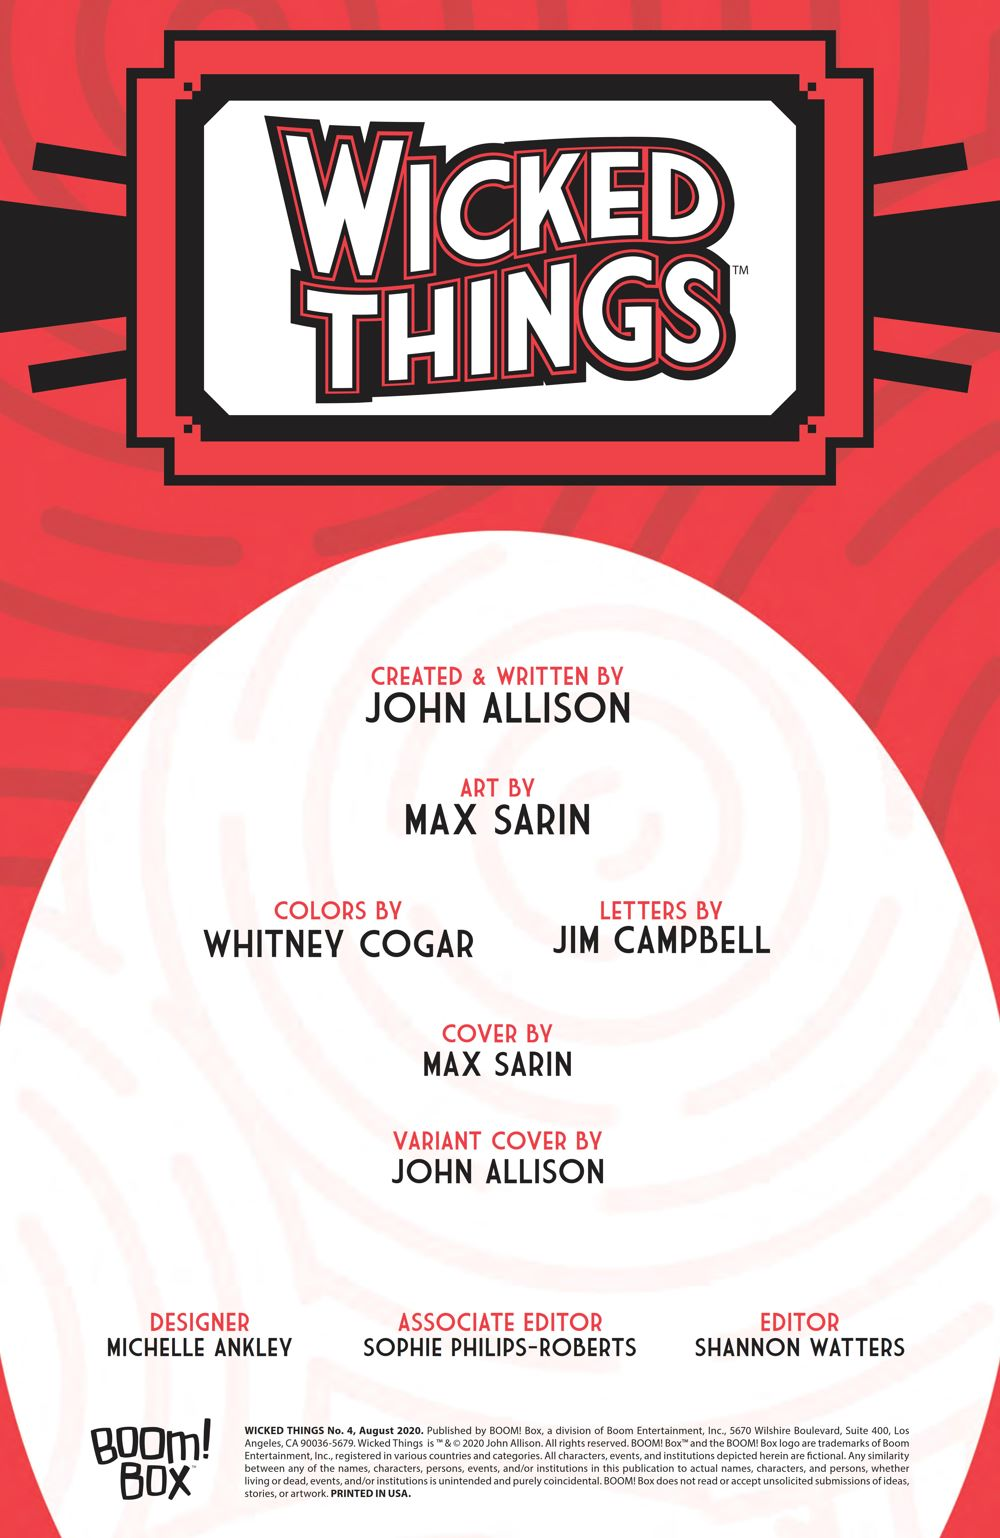 WickedThings_004_PRESS_2 ComicList Previews: WICKED THINGS #4